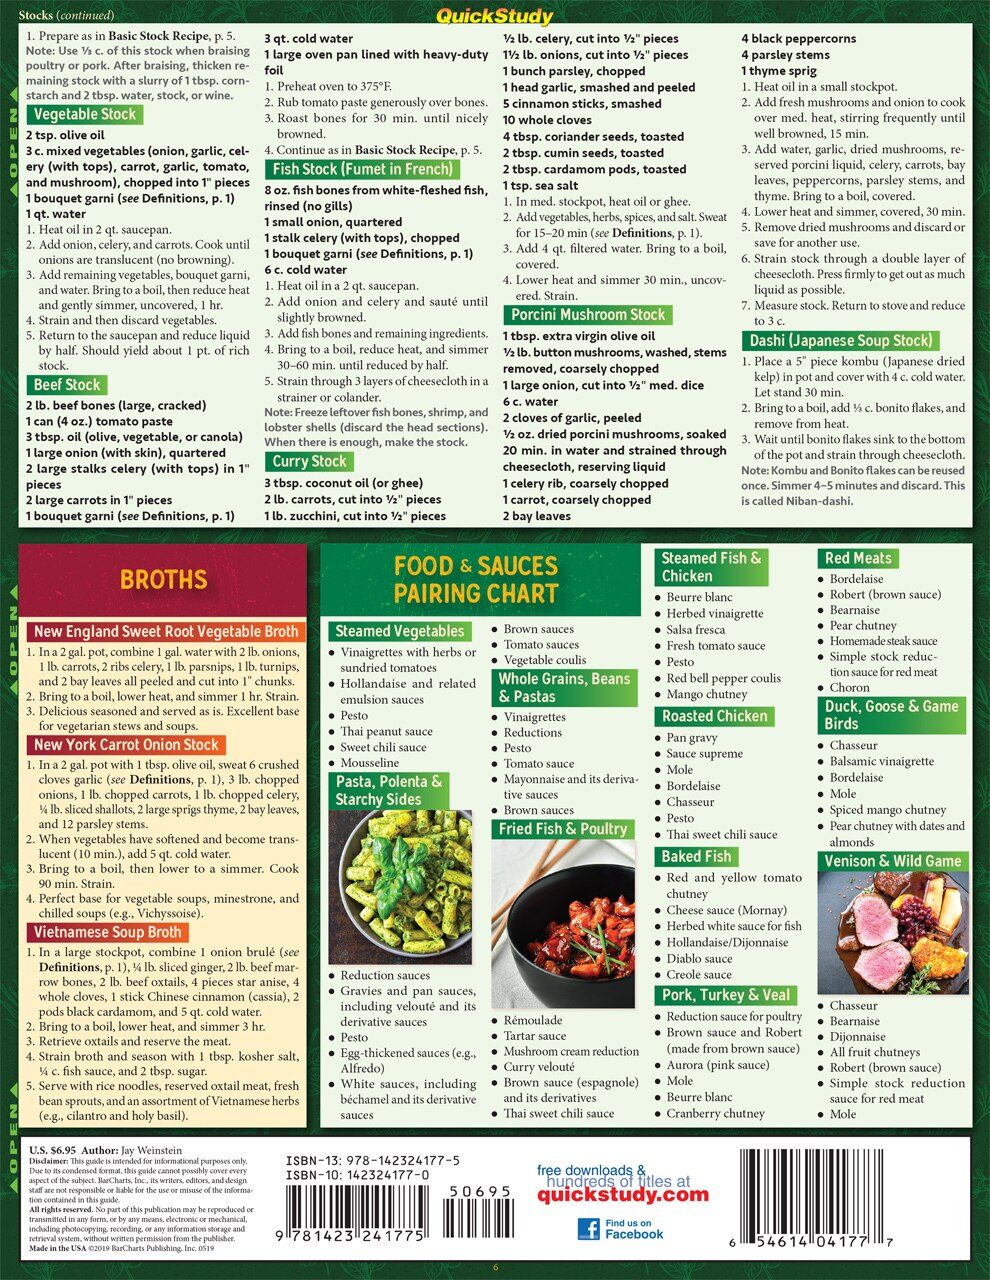 Quick Study QuickStudy Chef's Guide to Sauces & Dips Laminated Reference Guide BarCharts Publishing Culinary Reference Outline Back Image